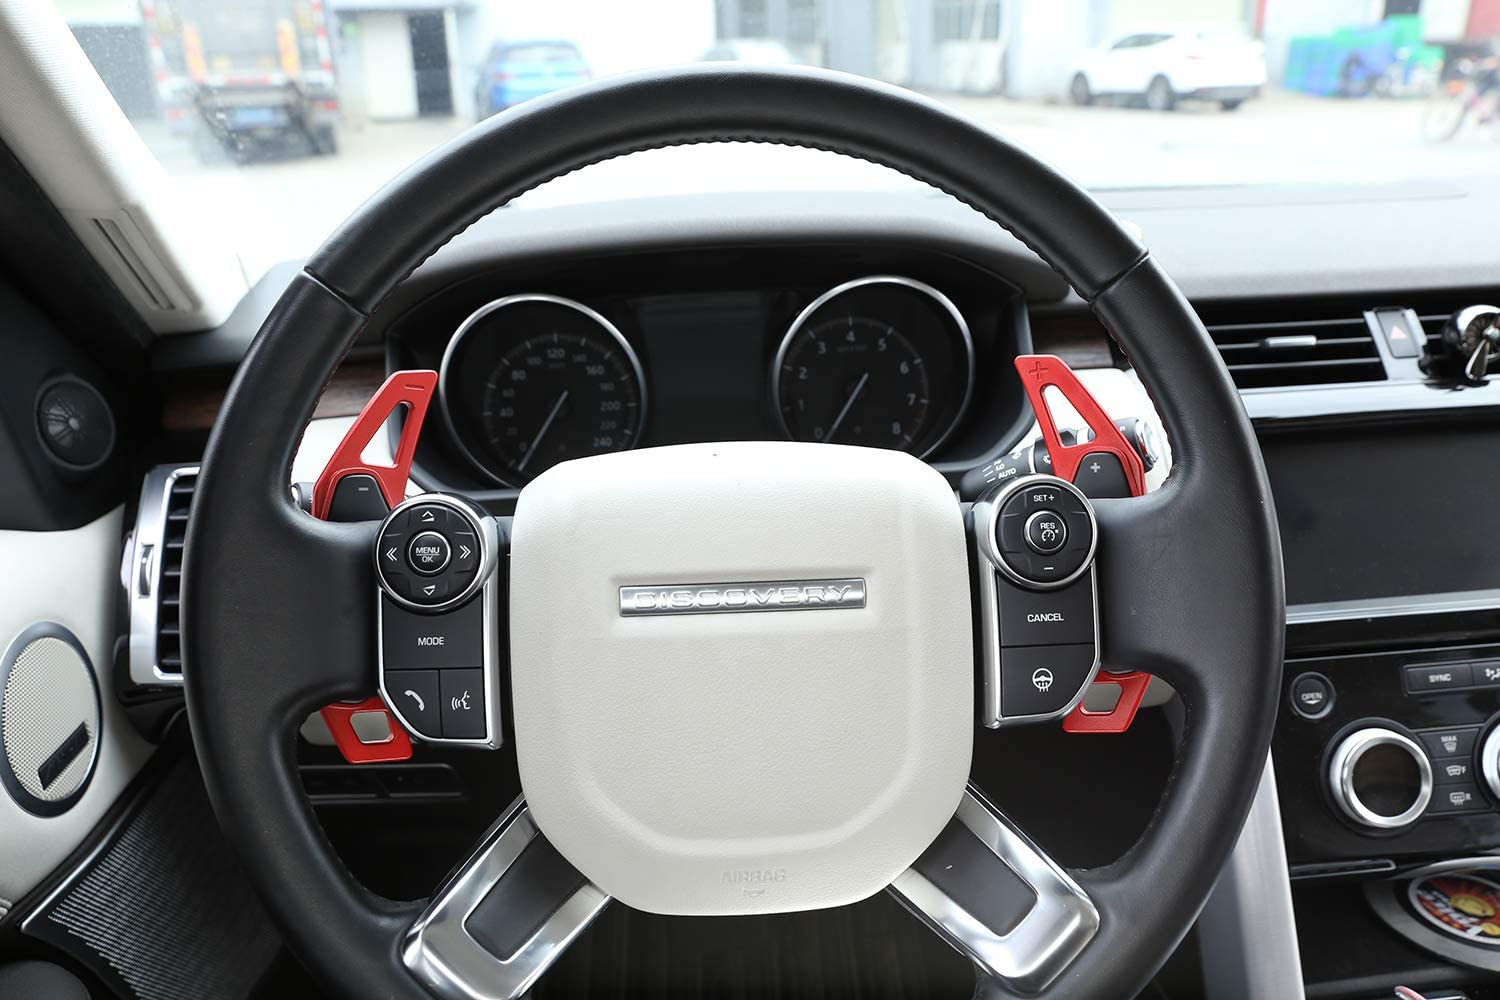 for Land rover Discovery Sport LR4 LR5 Evoque Vogue Velar for Jaguar XE XF F-Pace X761, Aluminum Alloy Steering Wheel Gear Shift Paddles (Red)